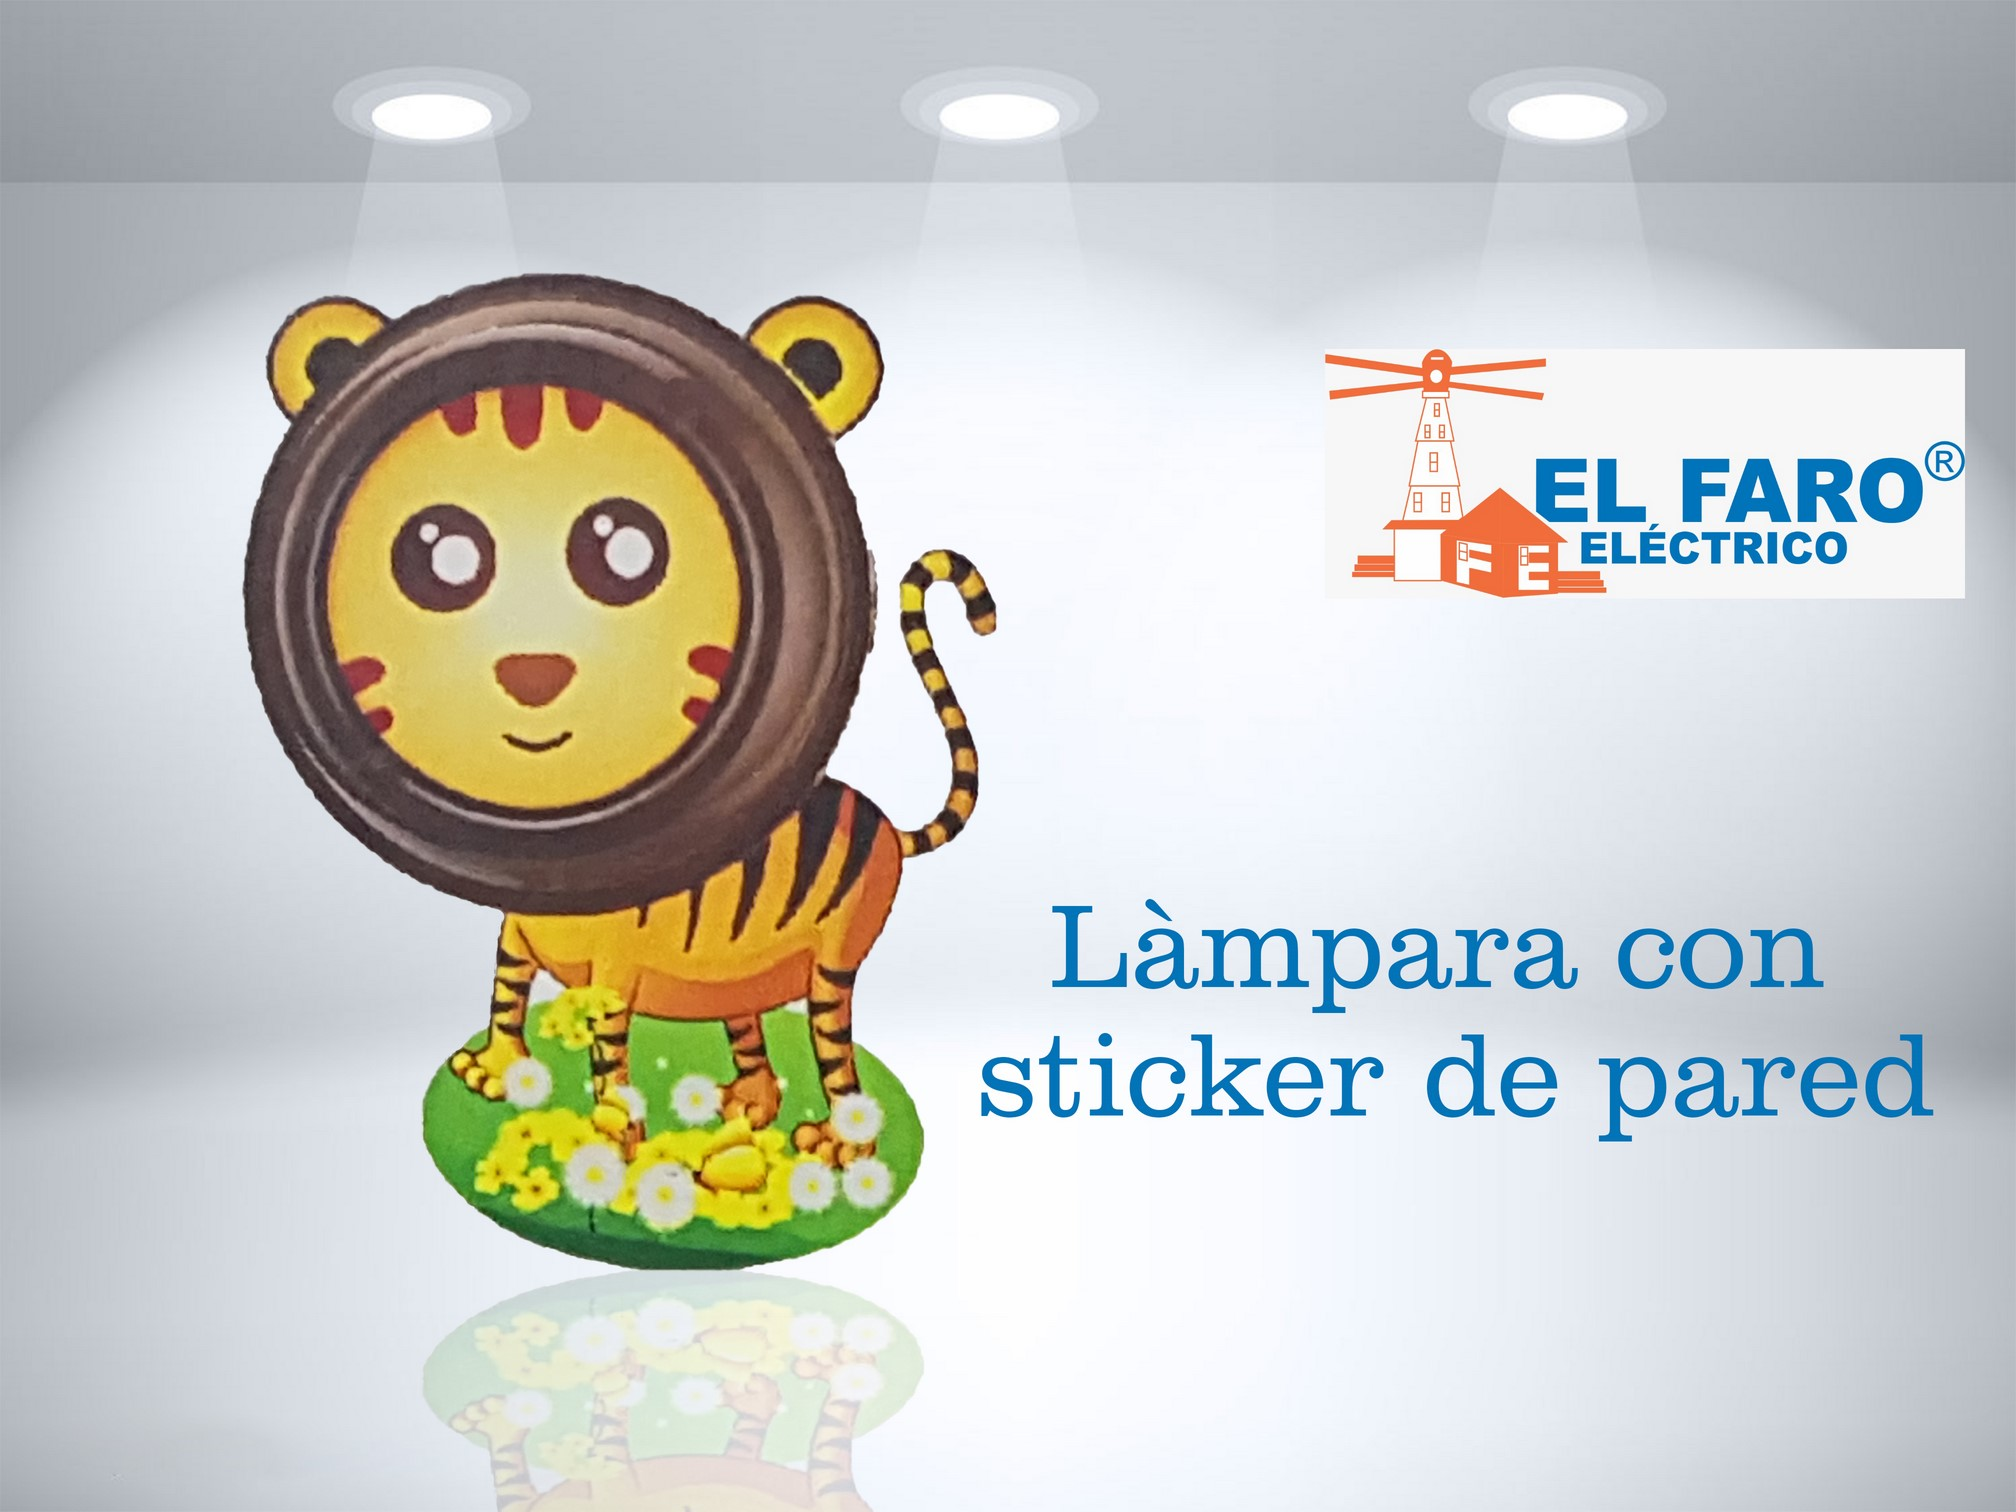 Làmpara con sticker de pared